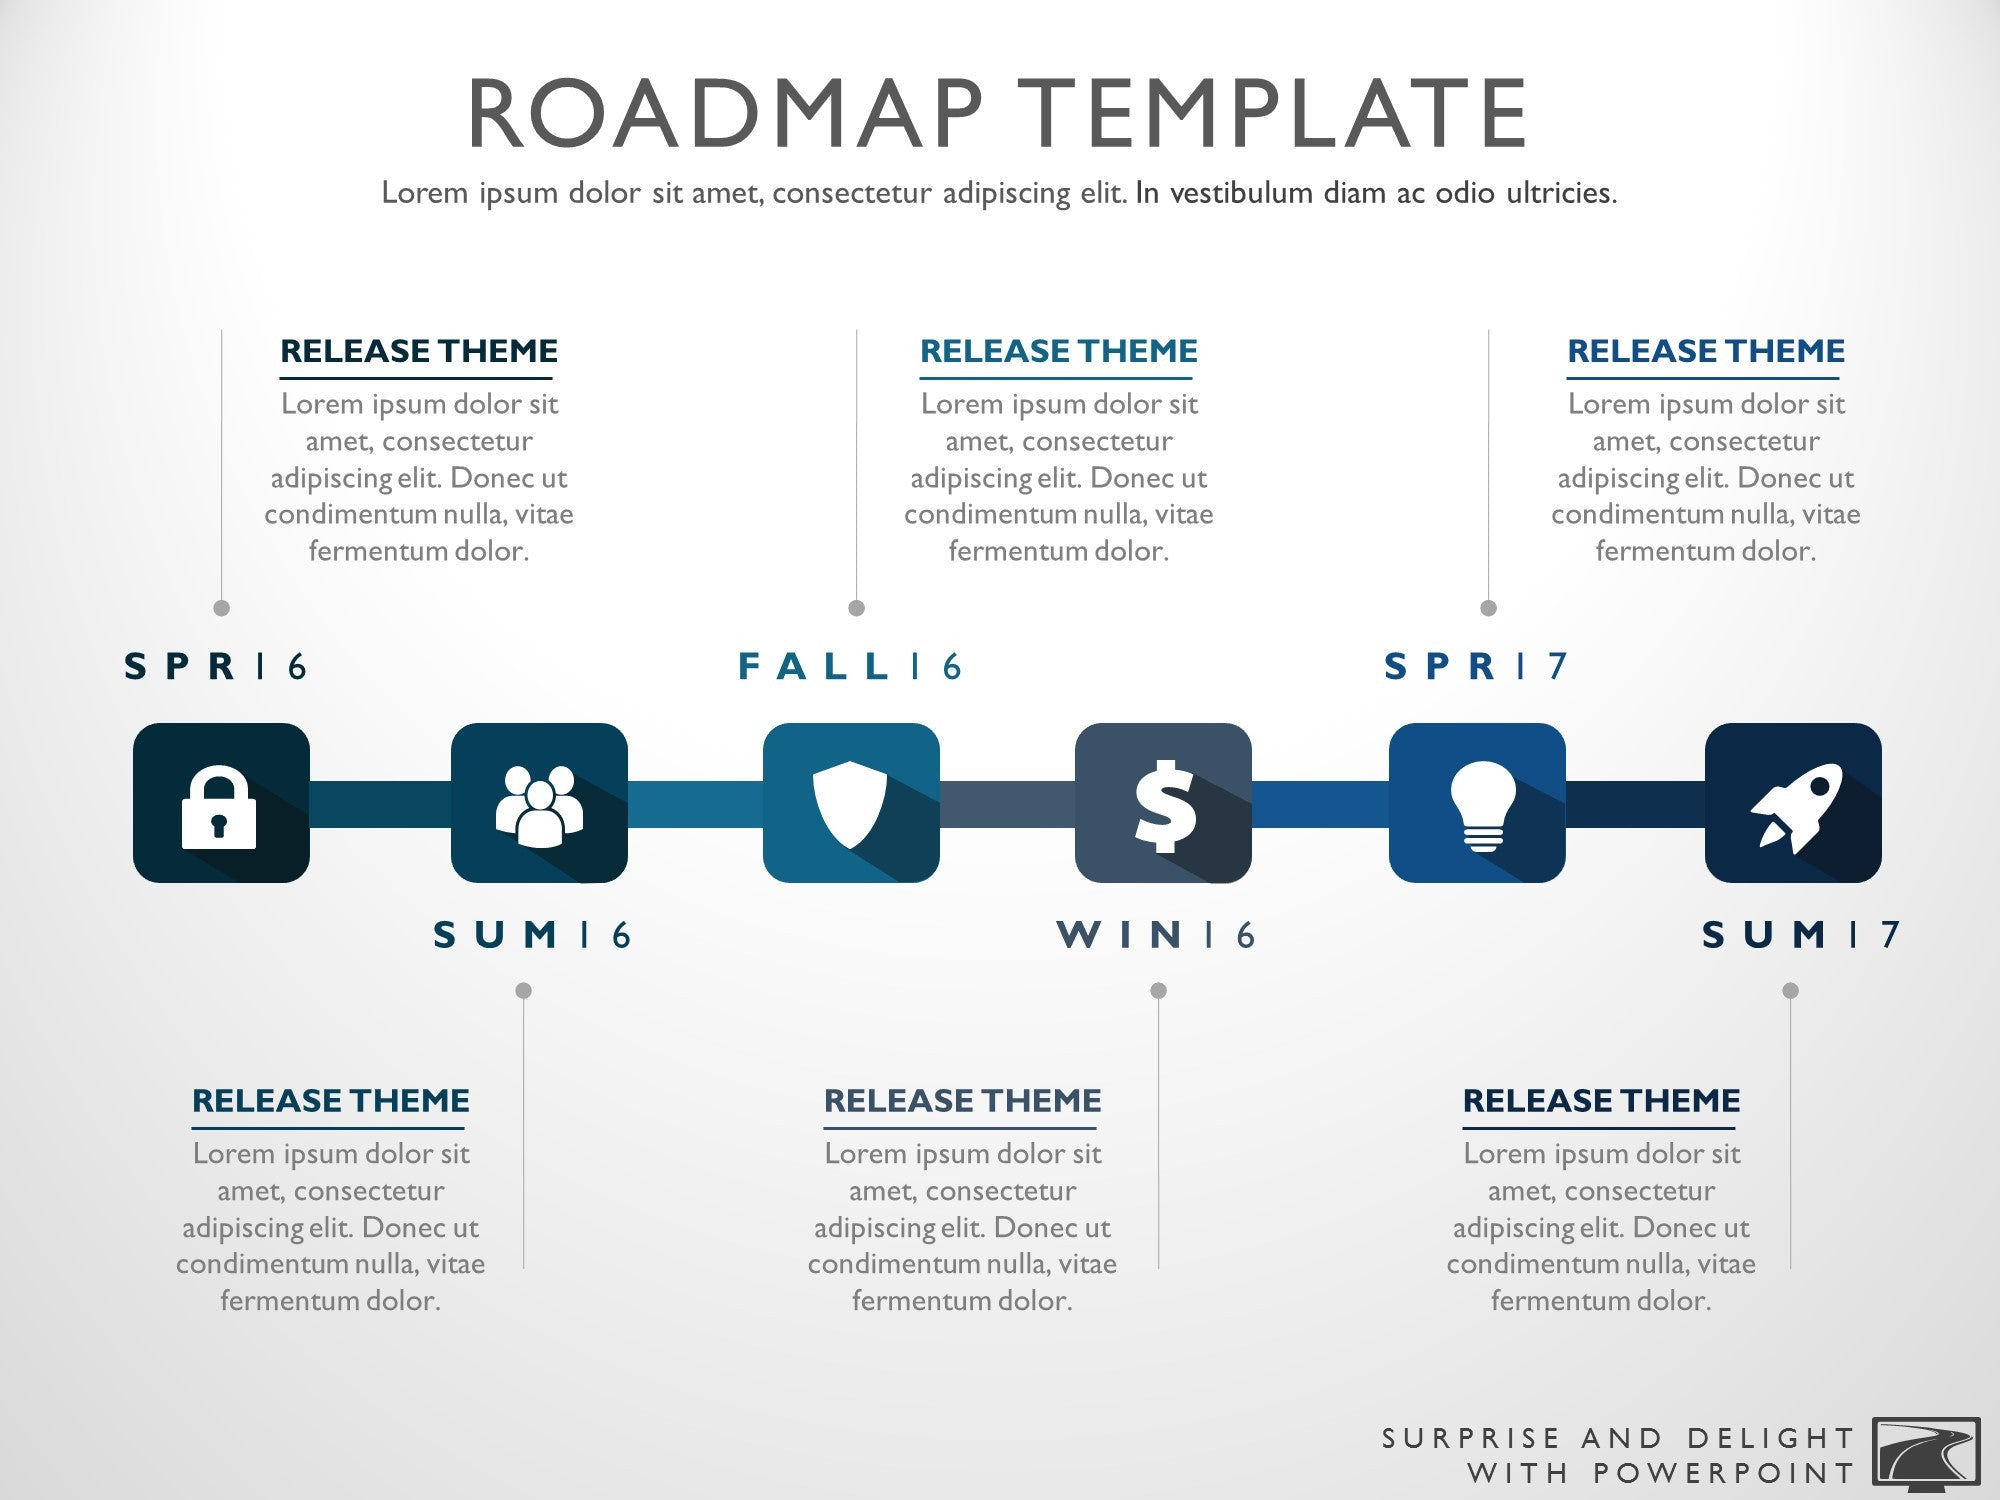 Six Phase Product Development Timeline Roadmap PowerPoint Diagram - Timeline roadmap template